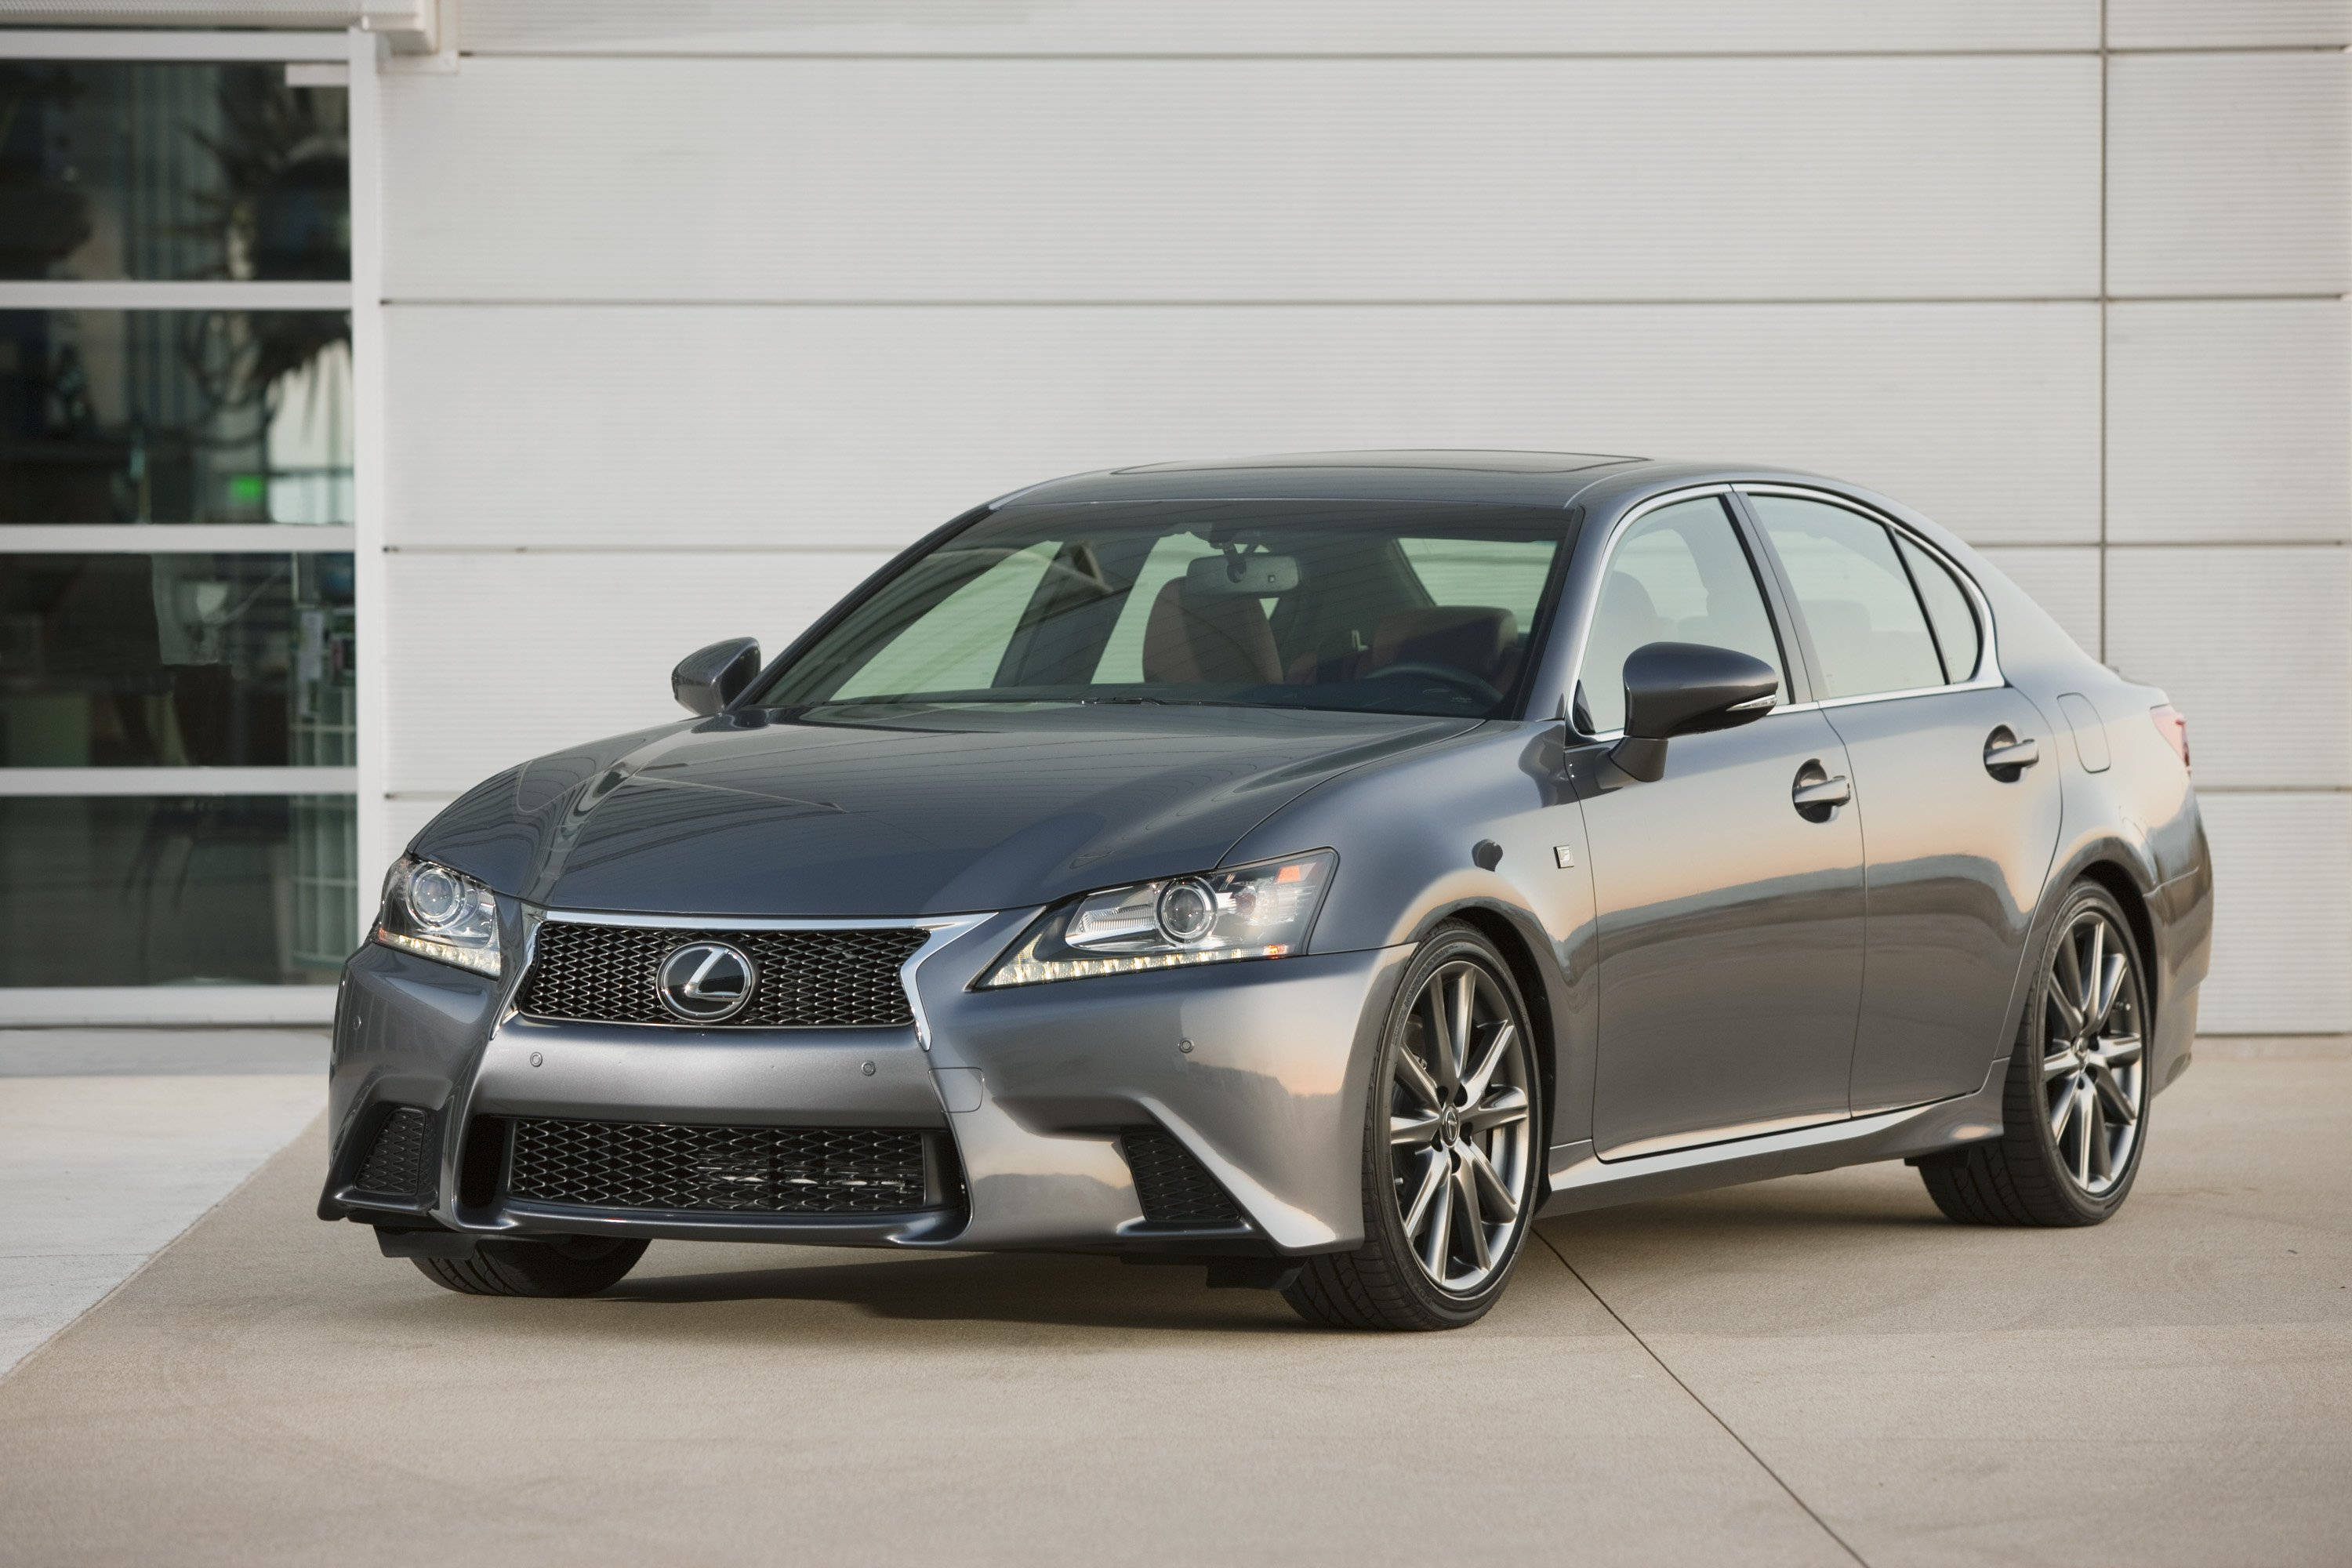 Road Tested: Lexus GS350 F-Sport and GS450h - Speed:Sport:Life